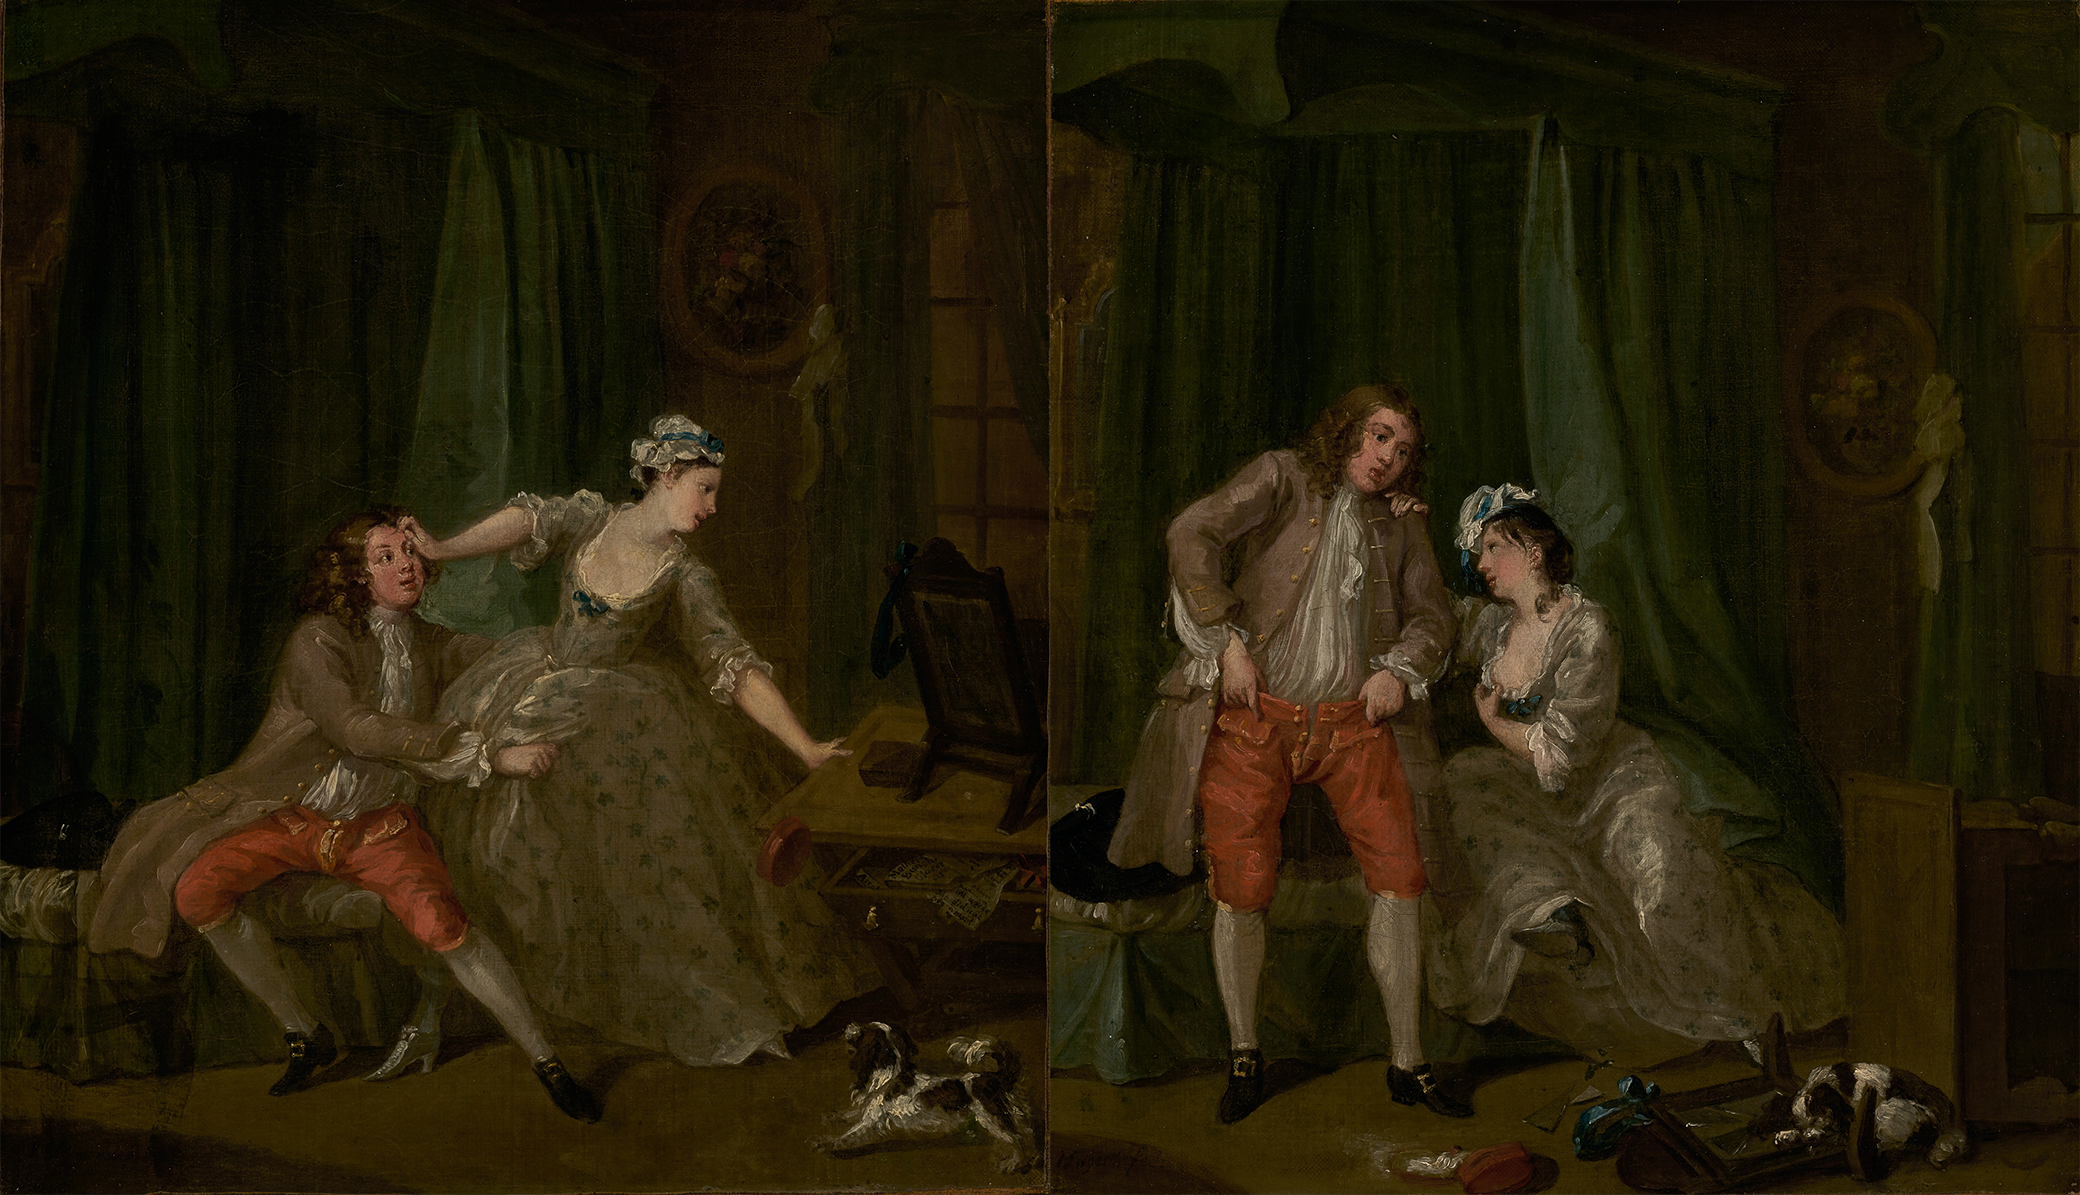 (L) Before and (R) After, by William Hogarth, c. 1730–31. The J. Paul Getty Museum, digital images courtesy of the Getty's Open Content Program.